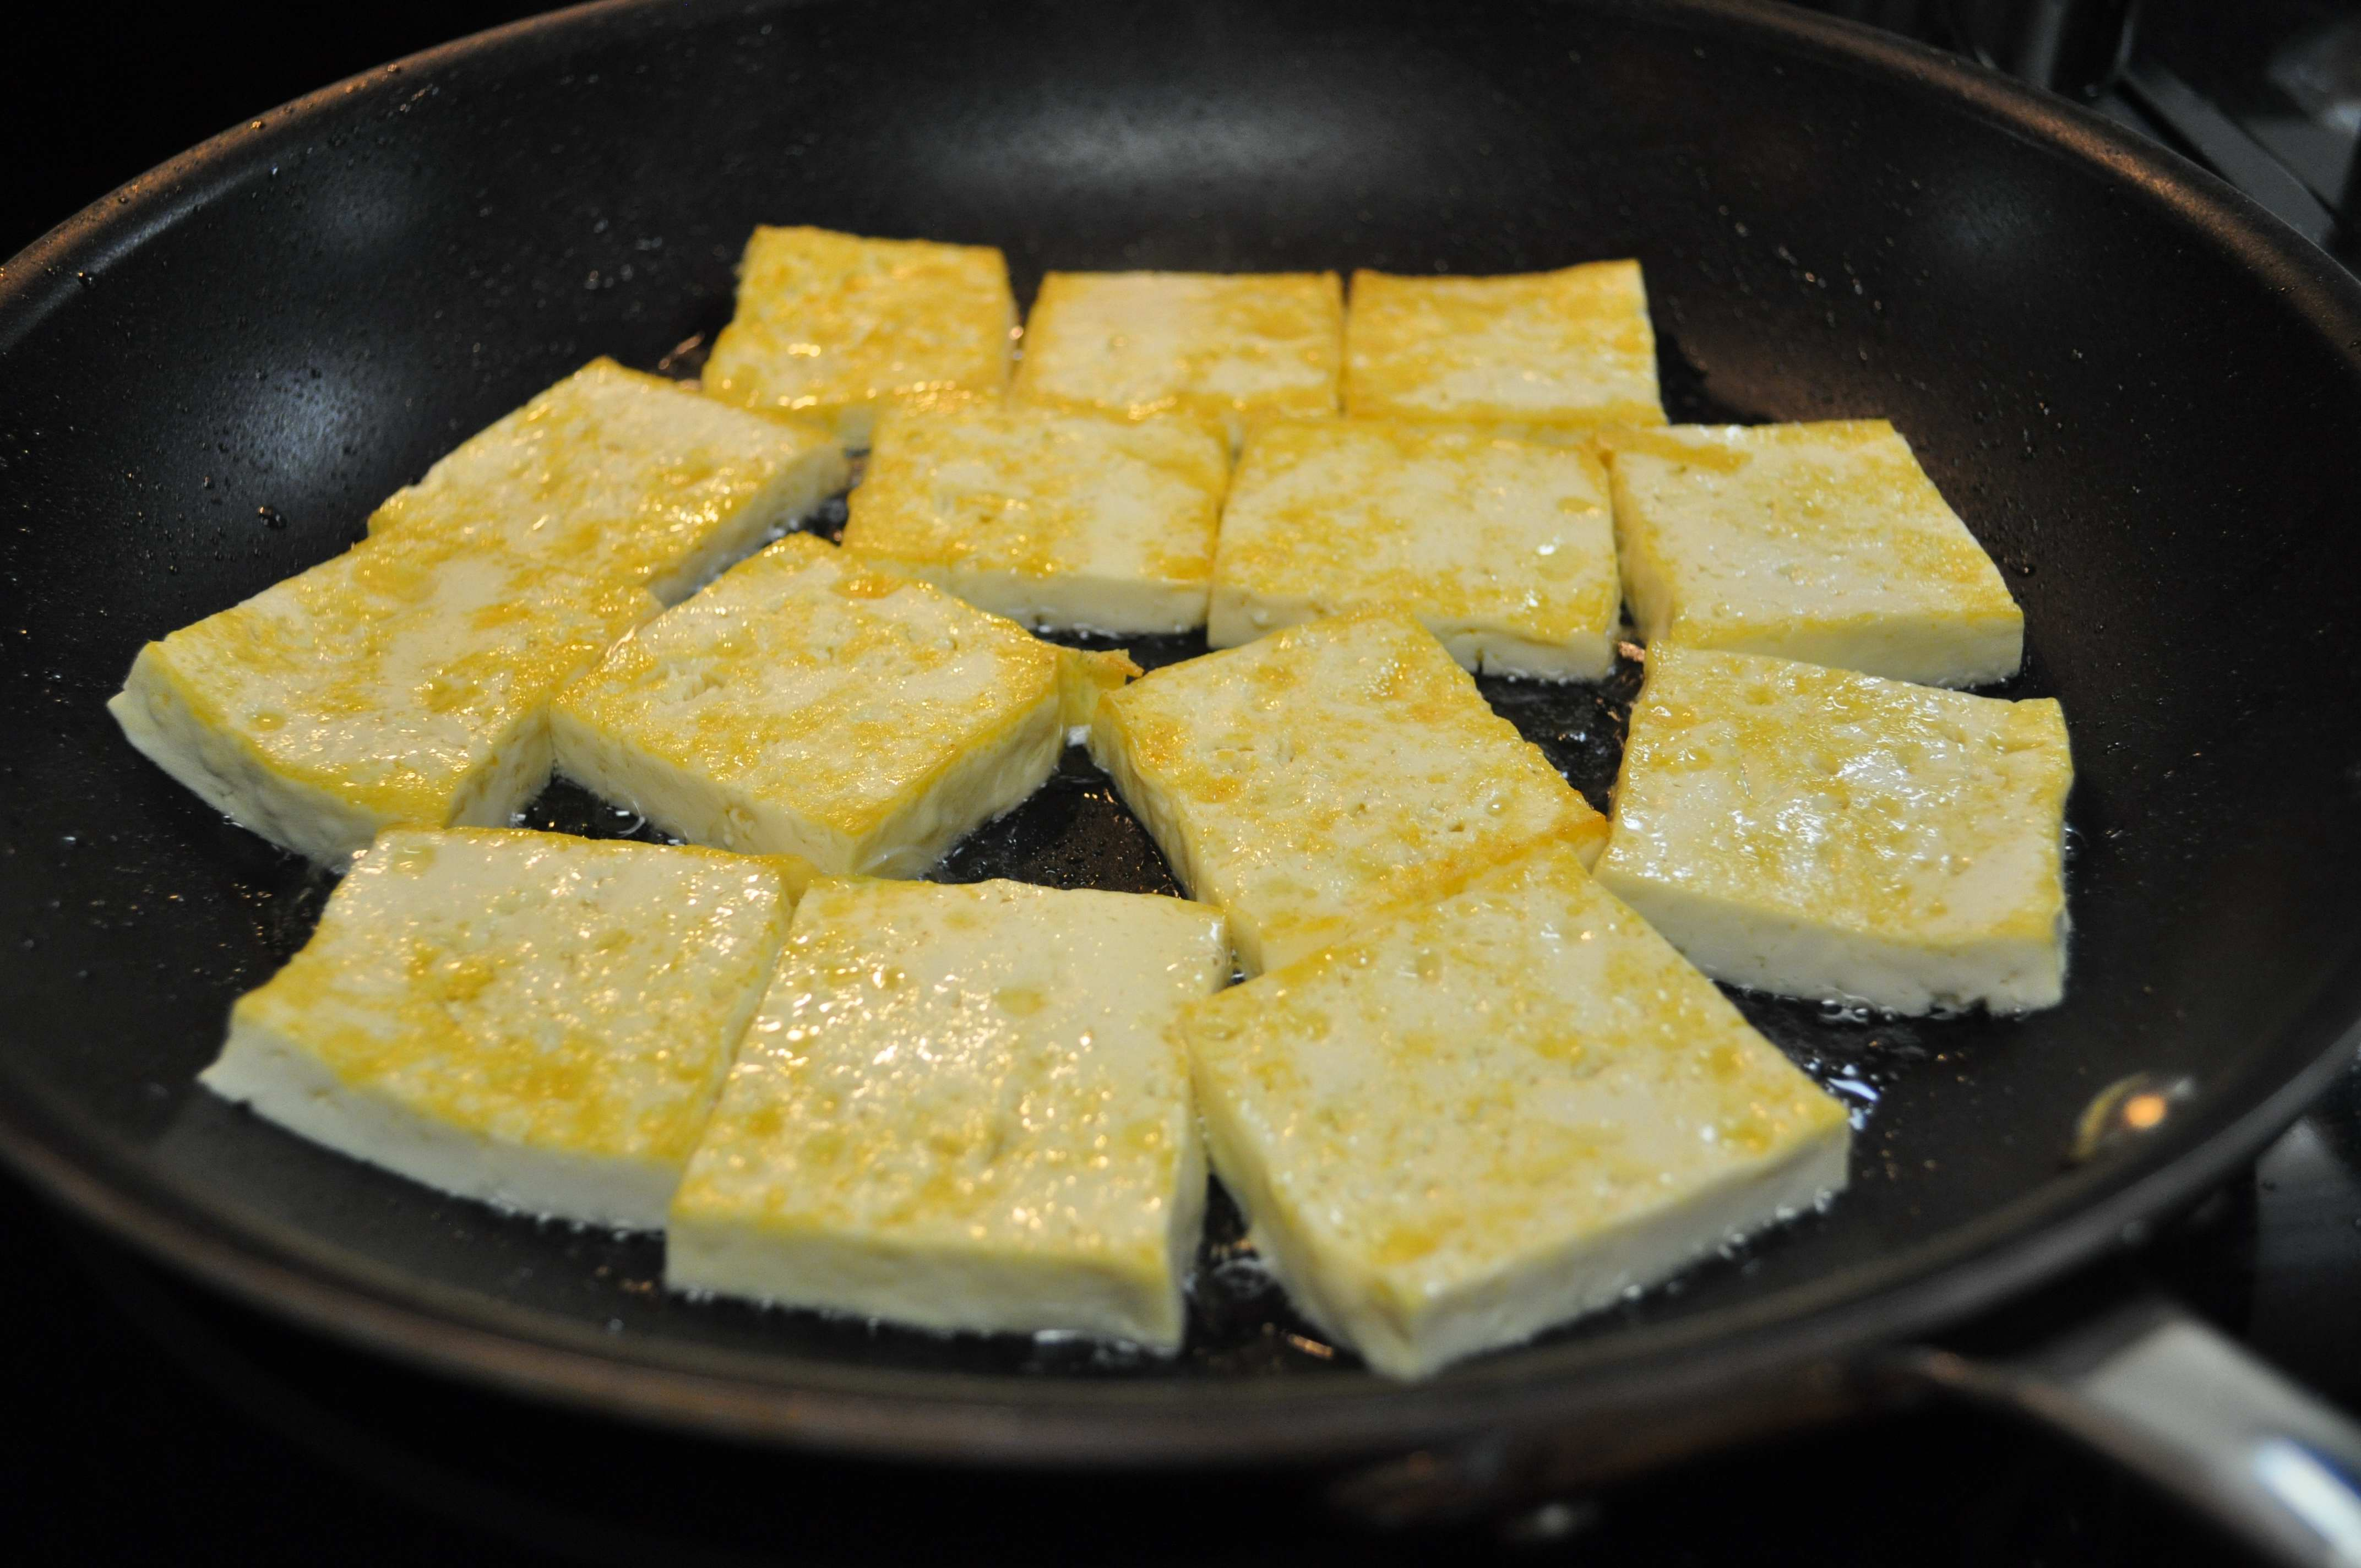 Tofu lightly browned in pan